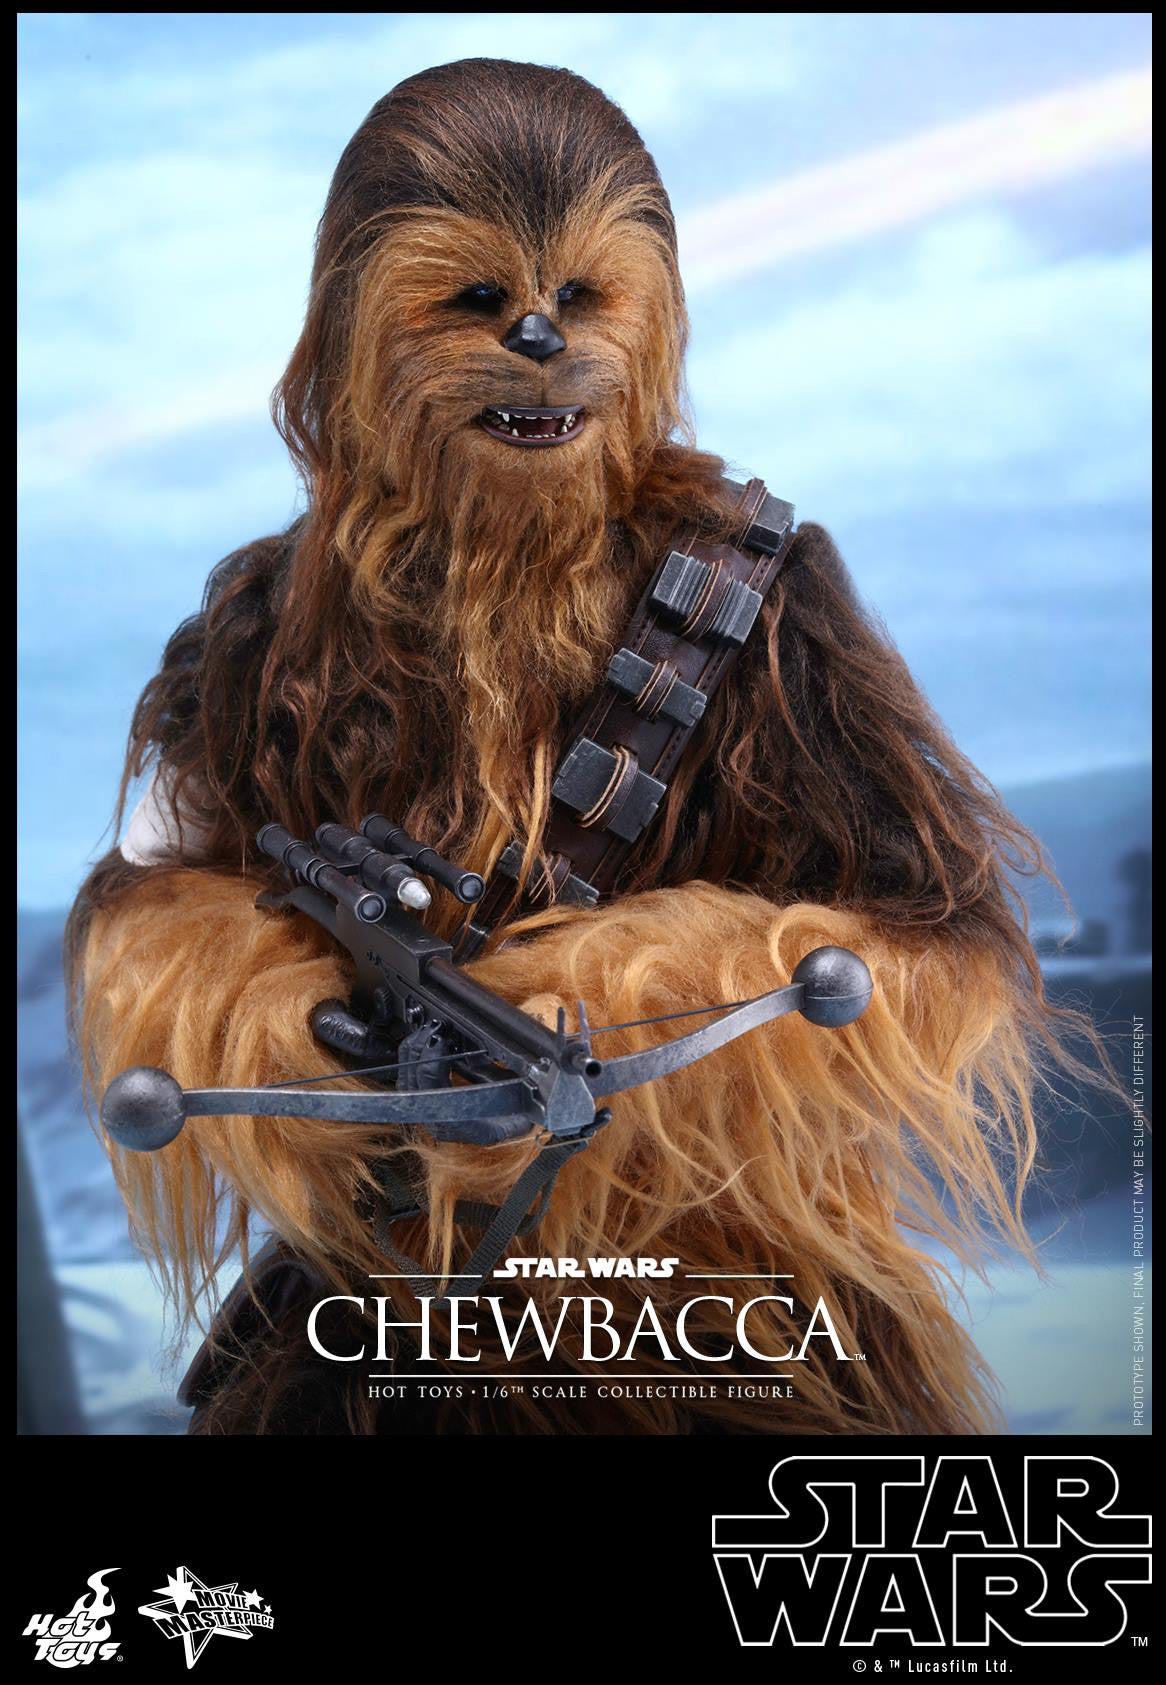 Hot Toys - MMS375 - Star Wars: The Force Awakens - Chewbacca - Marvelous Toys - 8